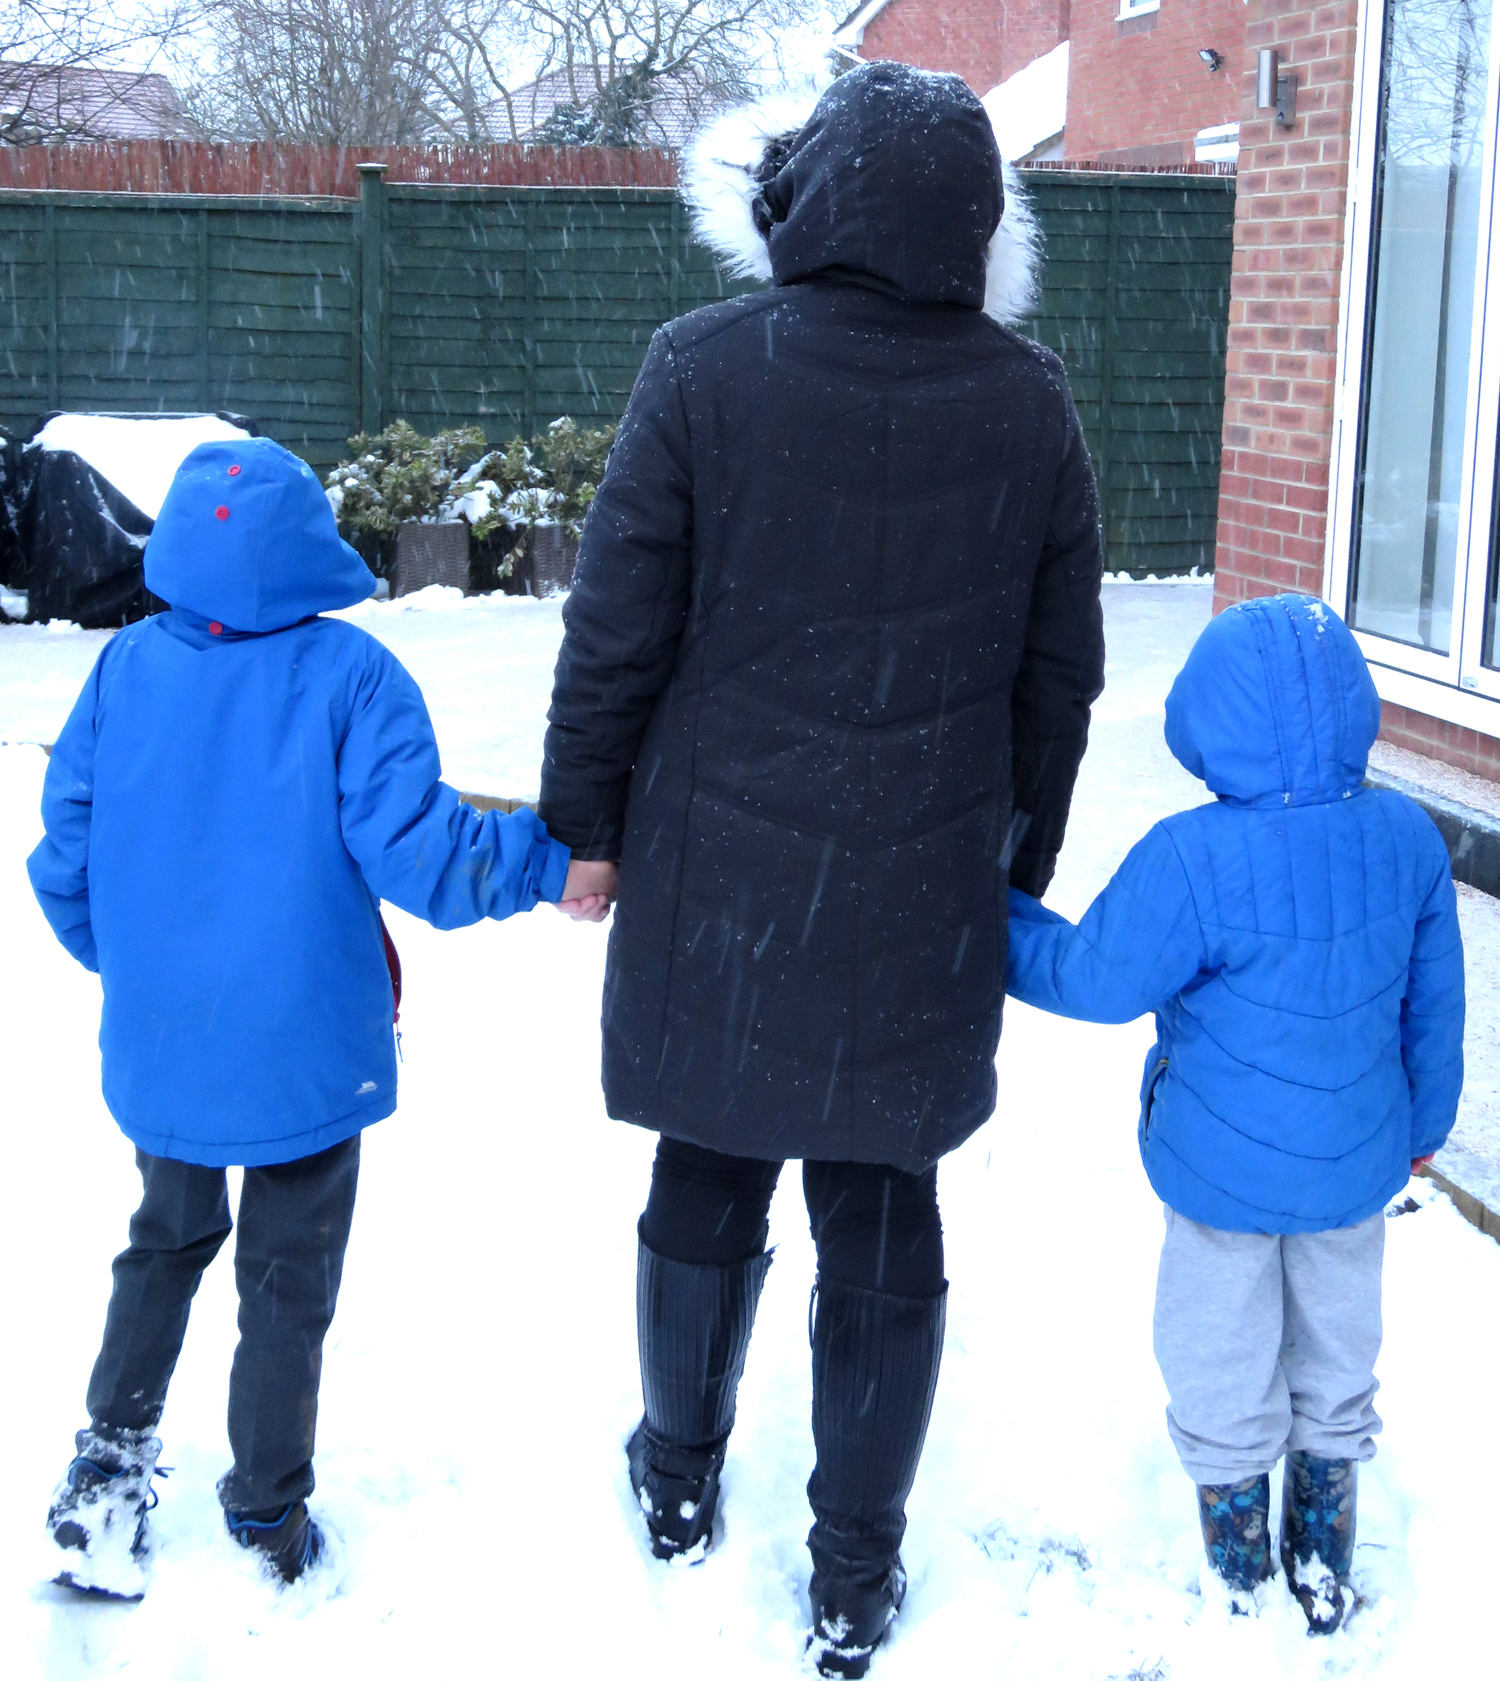 An Aycliffe Family's Fostering Journey